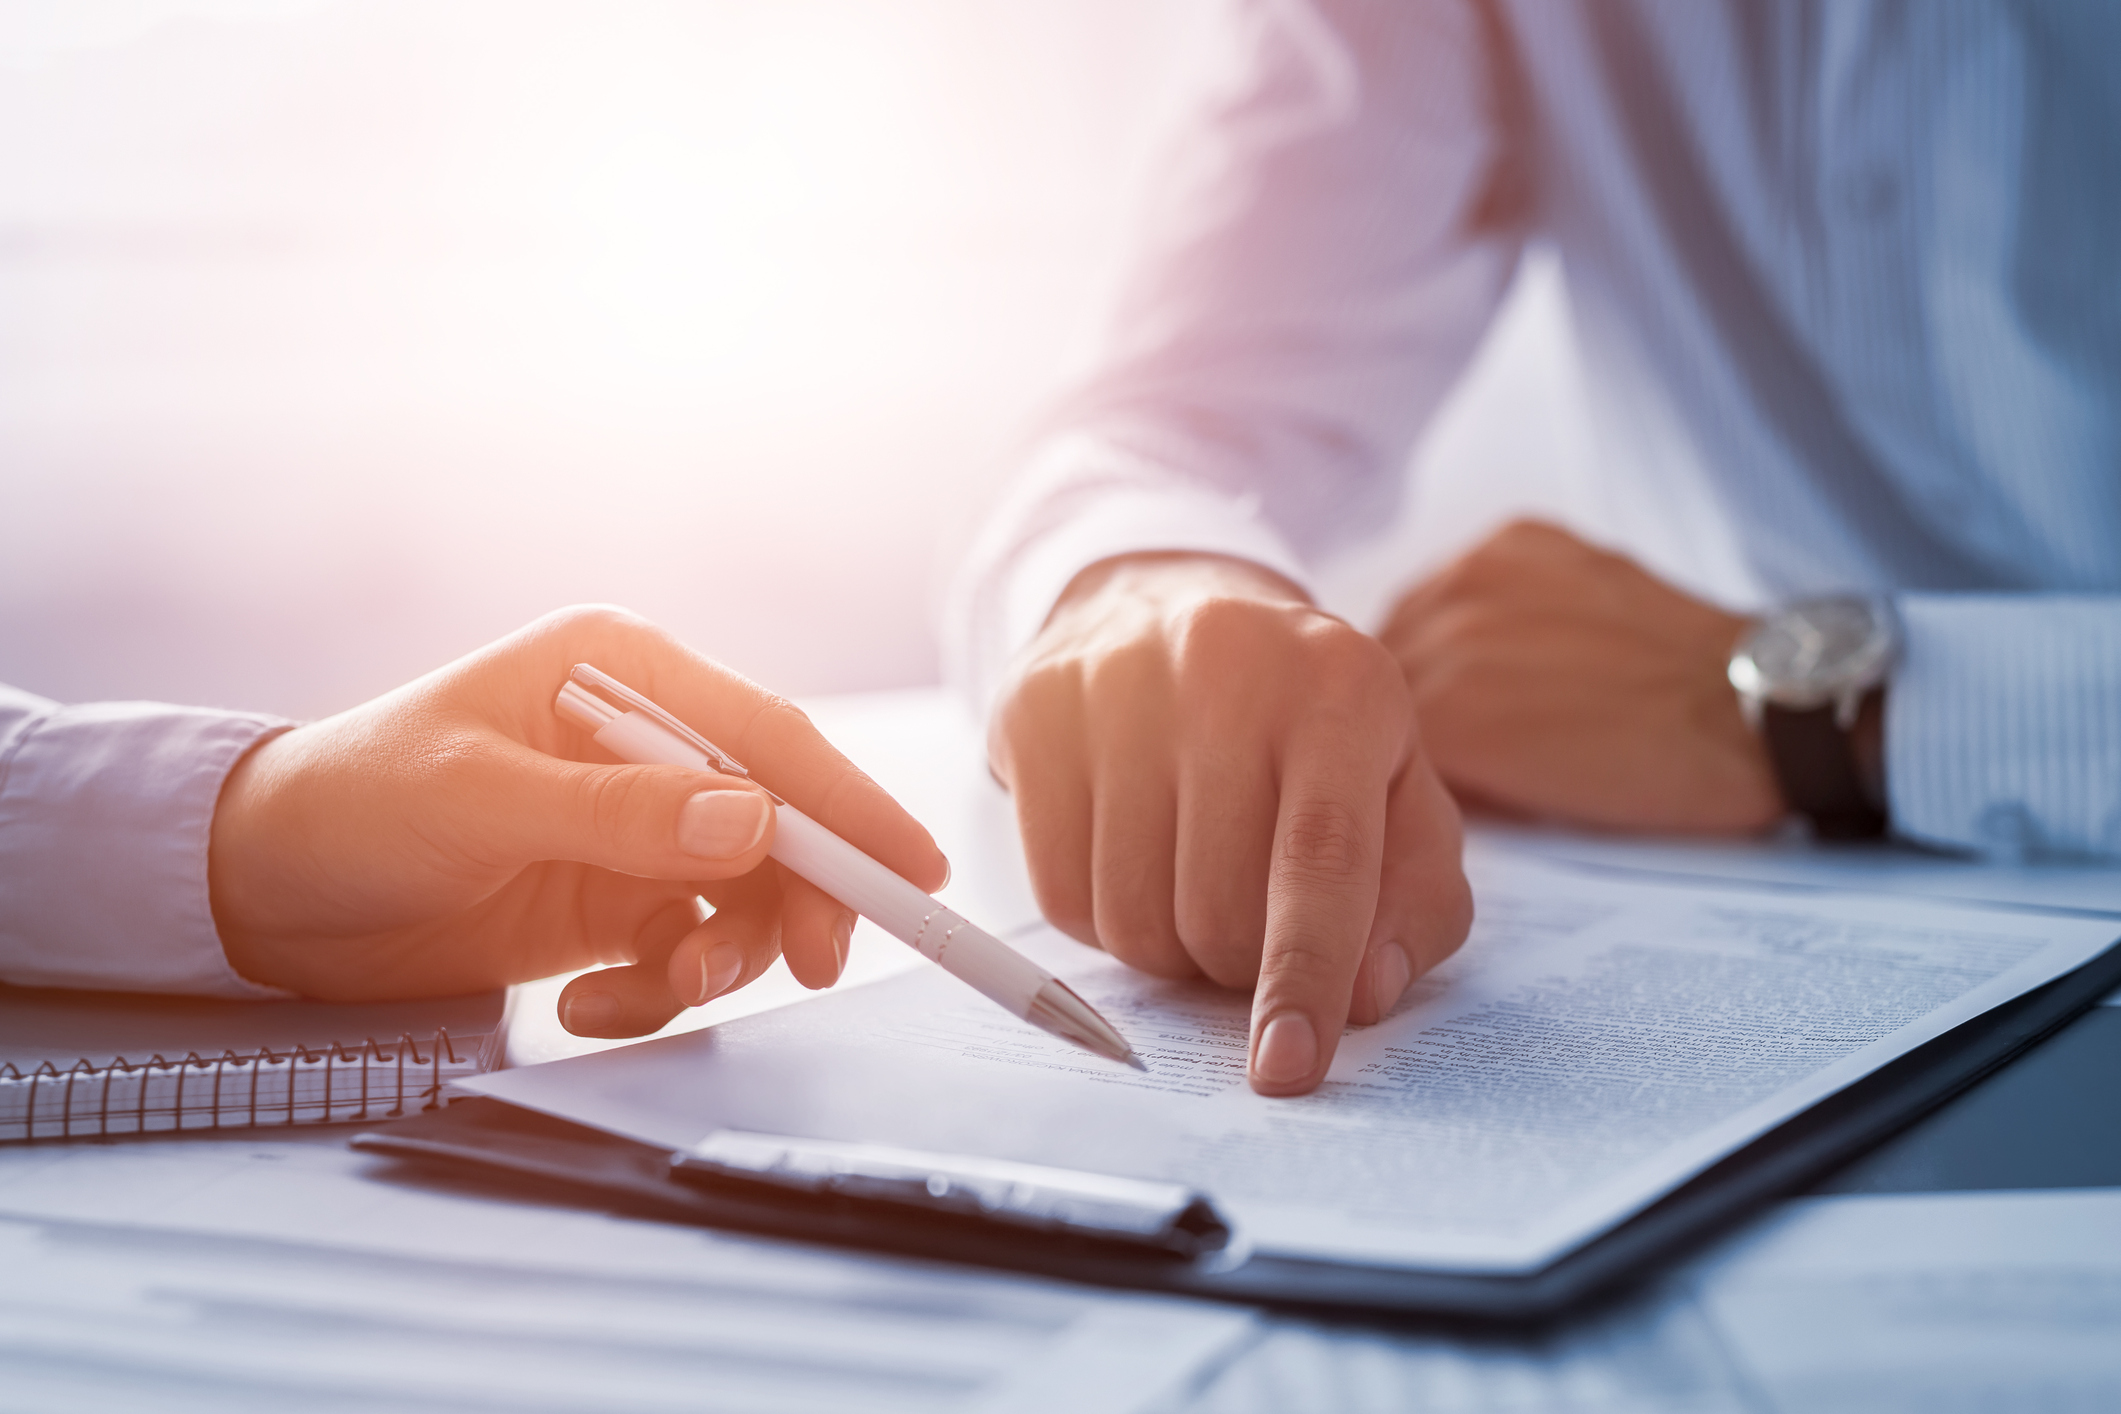 Business Law - With a long-standing presence in the NorthwestArkansas business community, we bring unique knowledge of the local business, finance andgovernment environment.